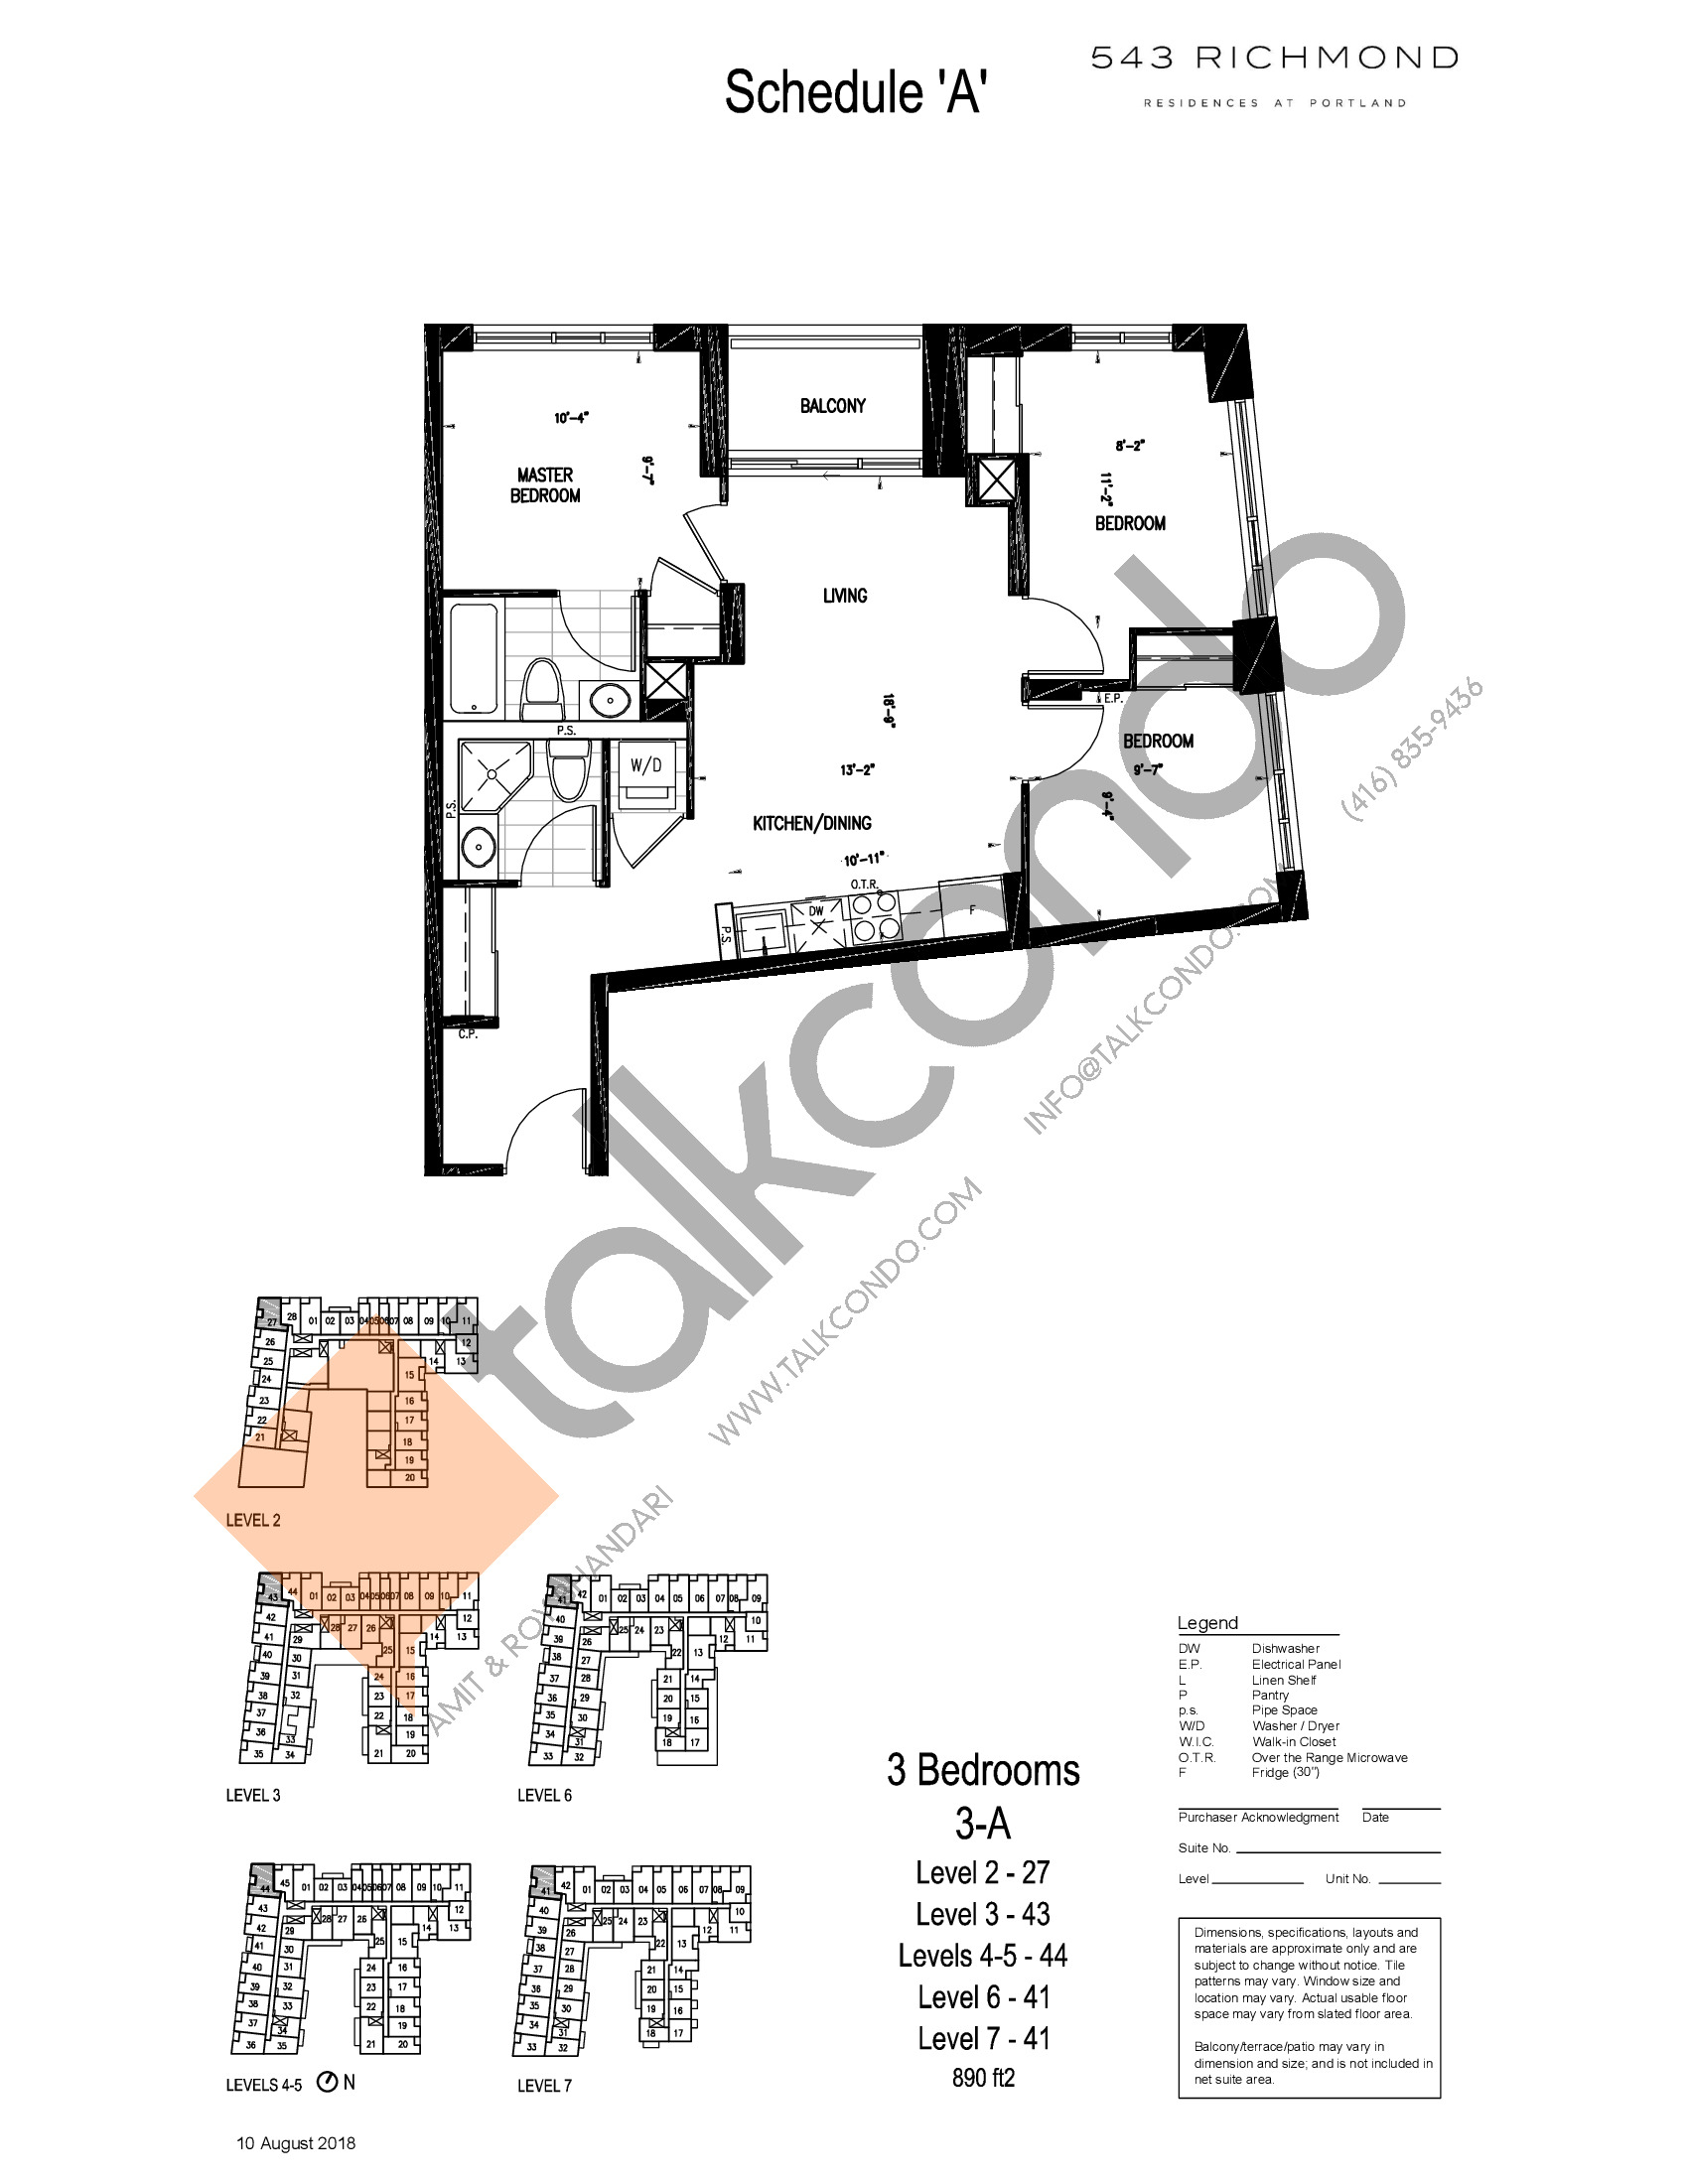 3-A Floor Plan at 543 Richmond St Condos - 890 sq.ft